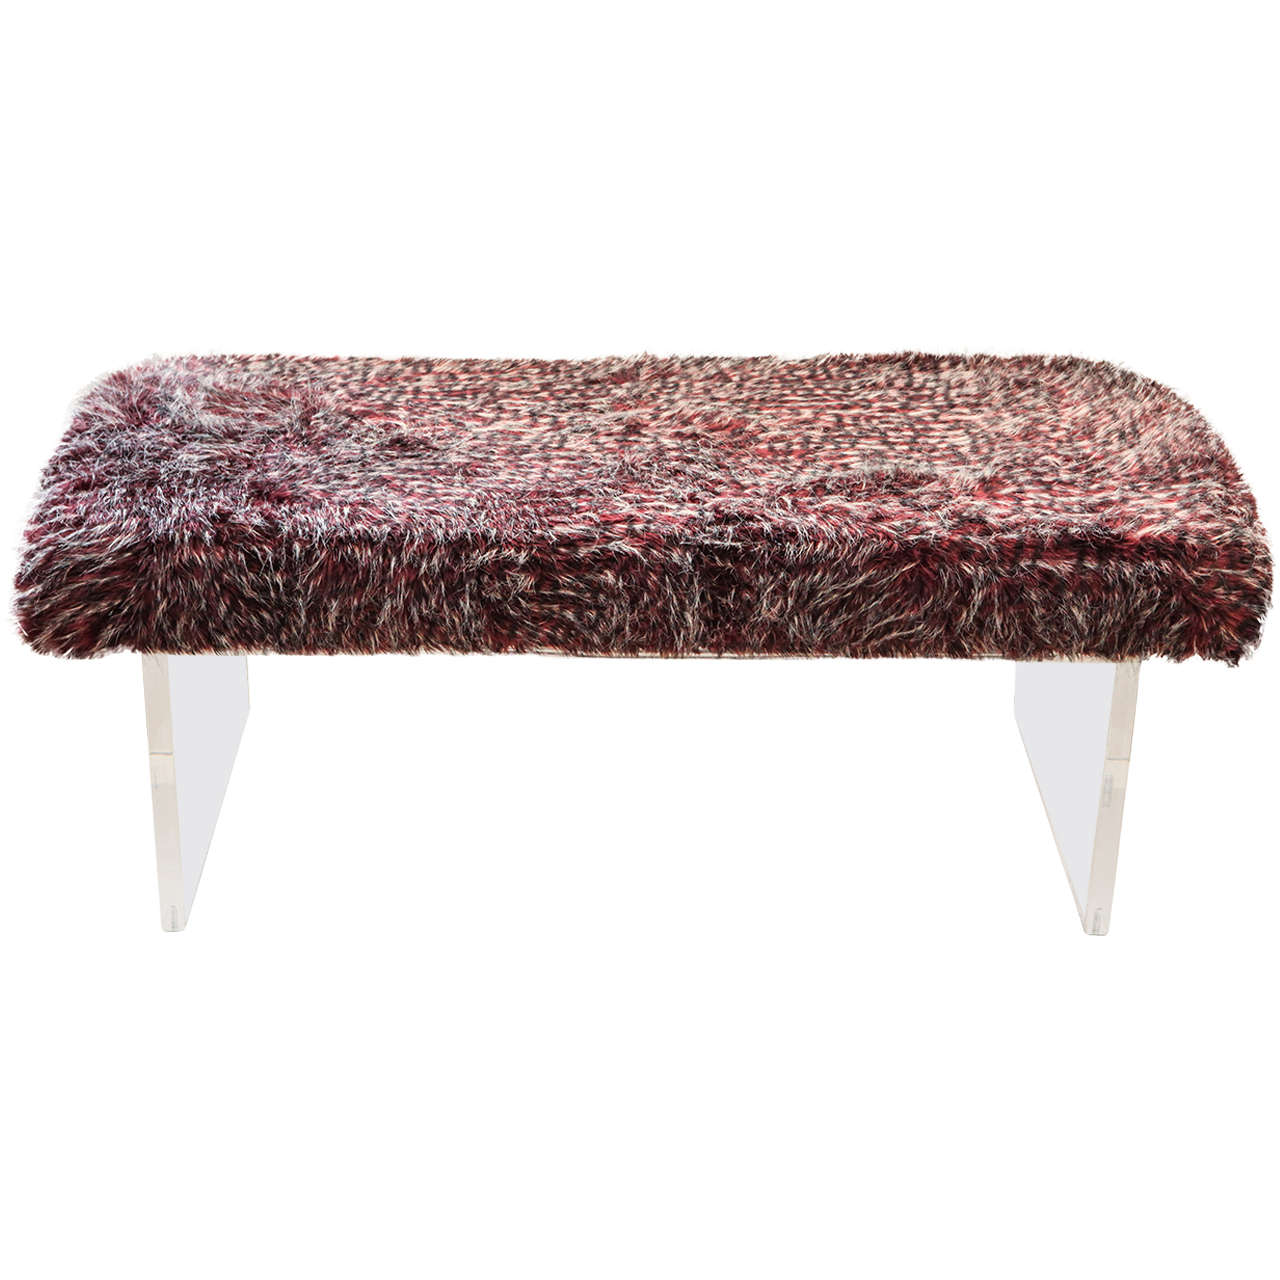 1960 s faux fur bench